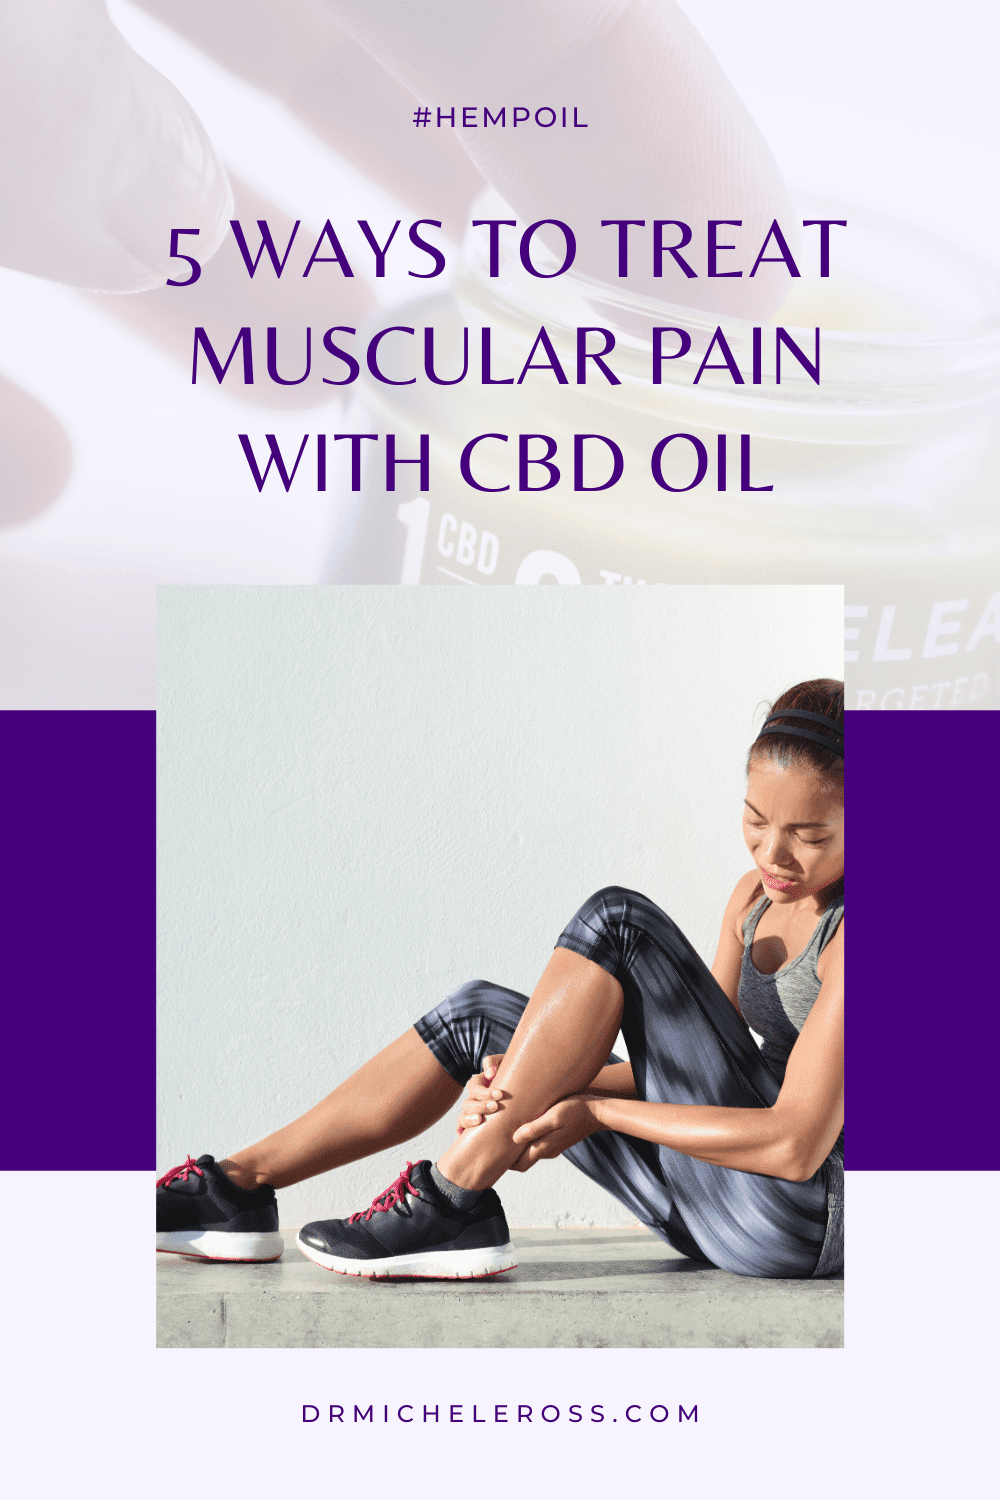 5 Best Ways To Treat Muscular Pain With CBD Oil